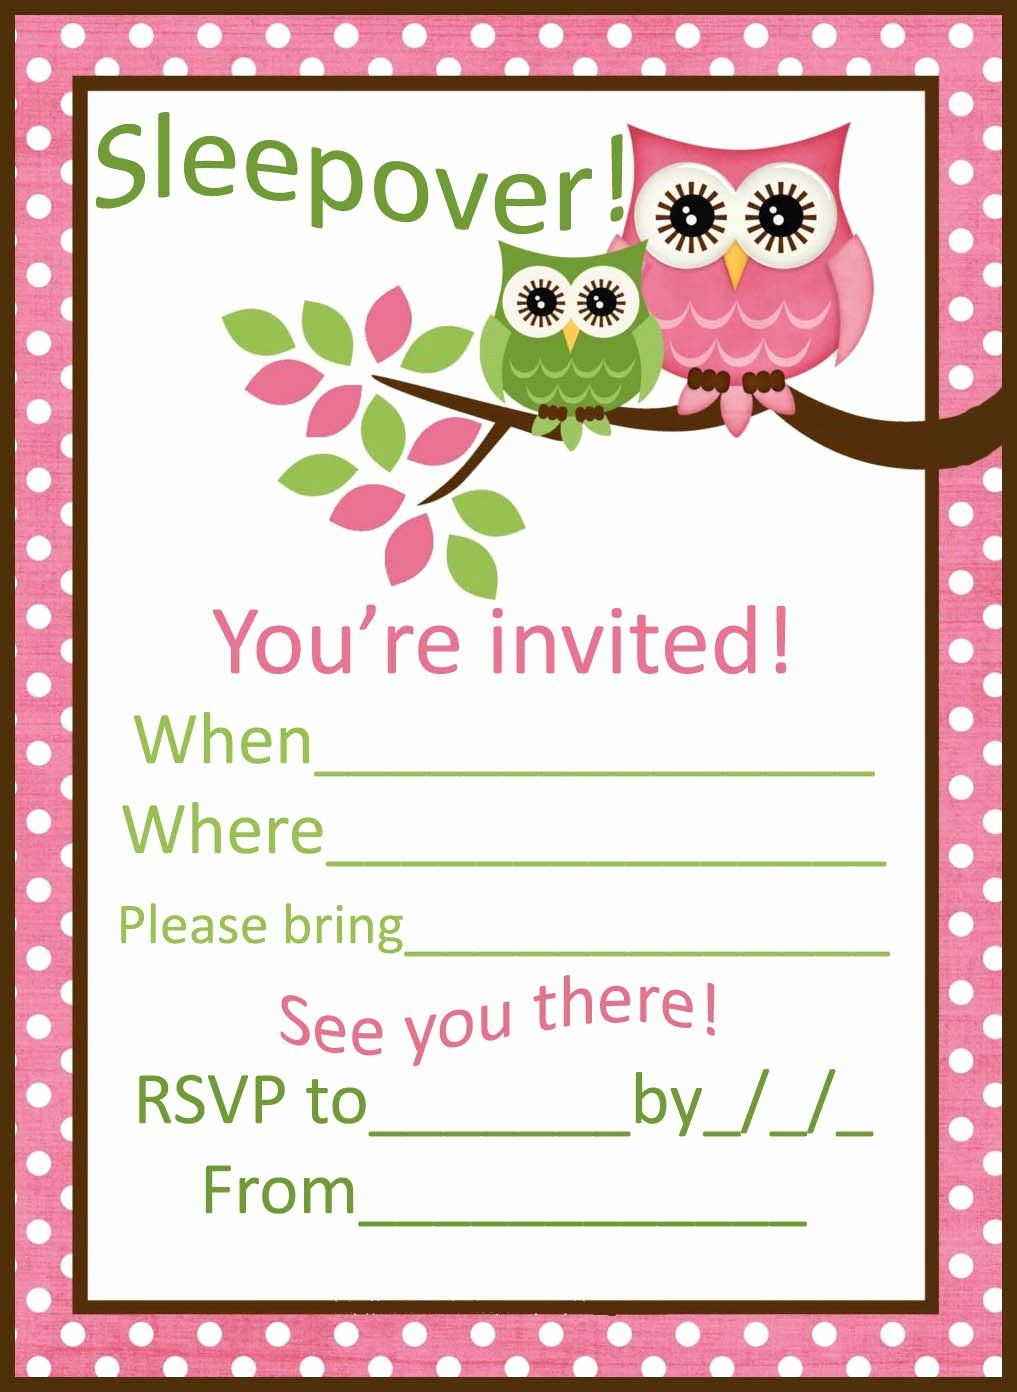 Girl Birthday Party Invitation Template Fresh Sleepover Party Invitations |  Sleepover invitations, Slumber party invitations, Party invite template